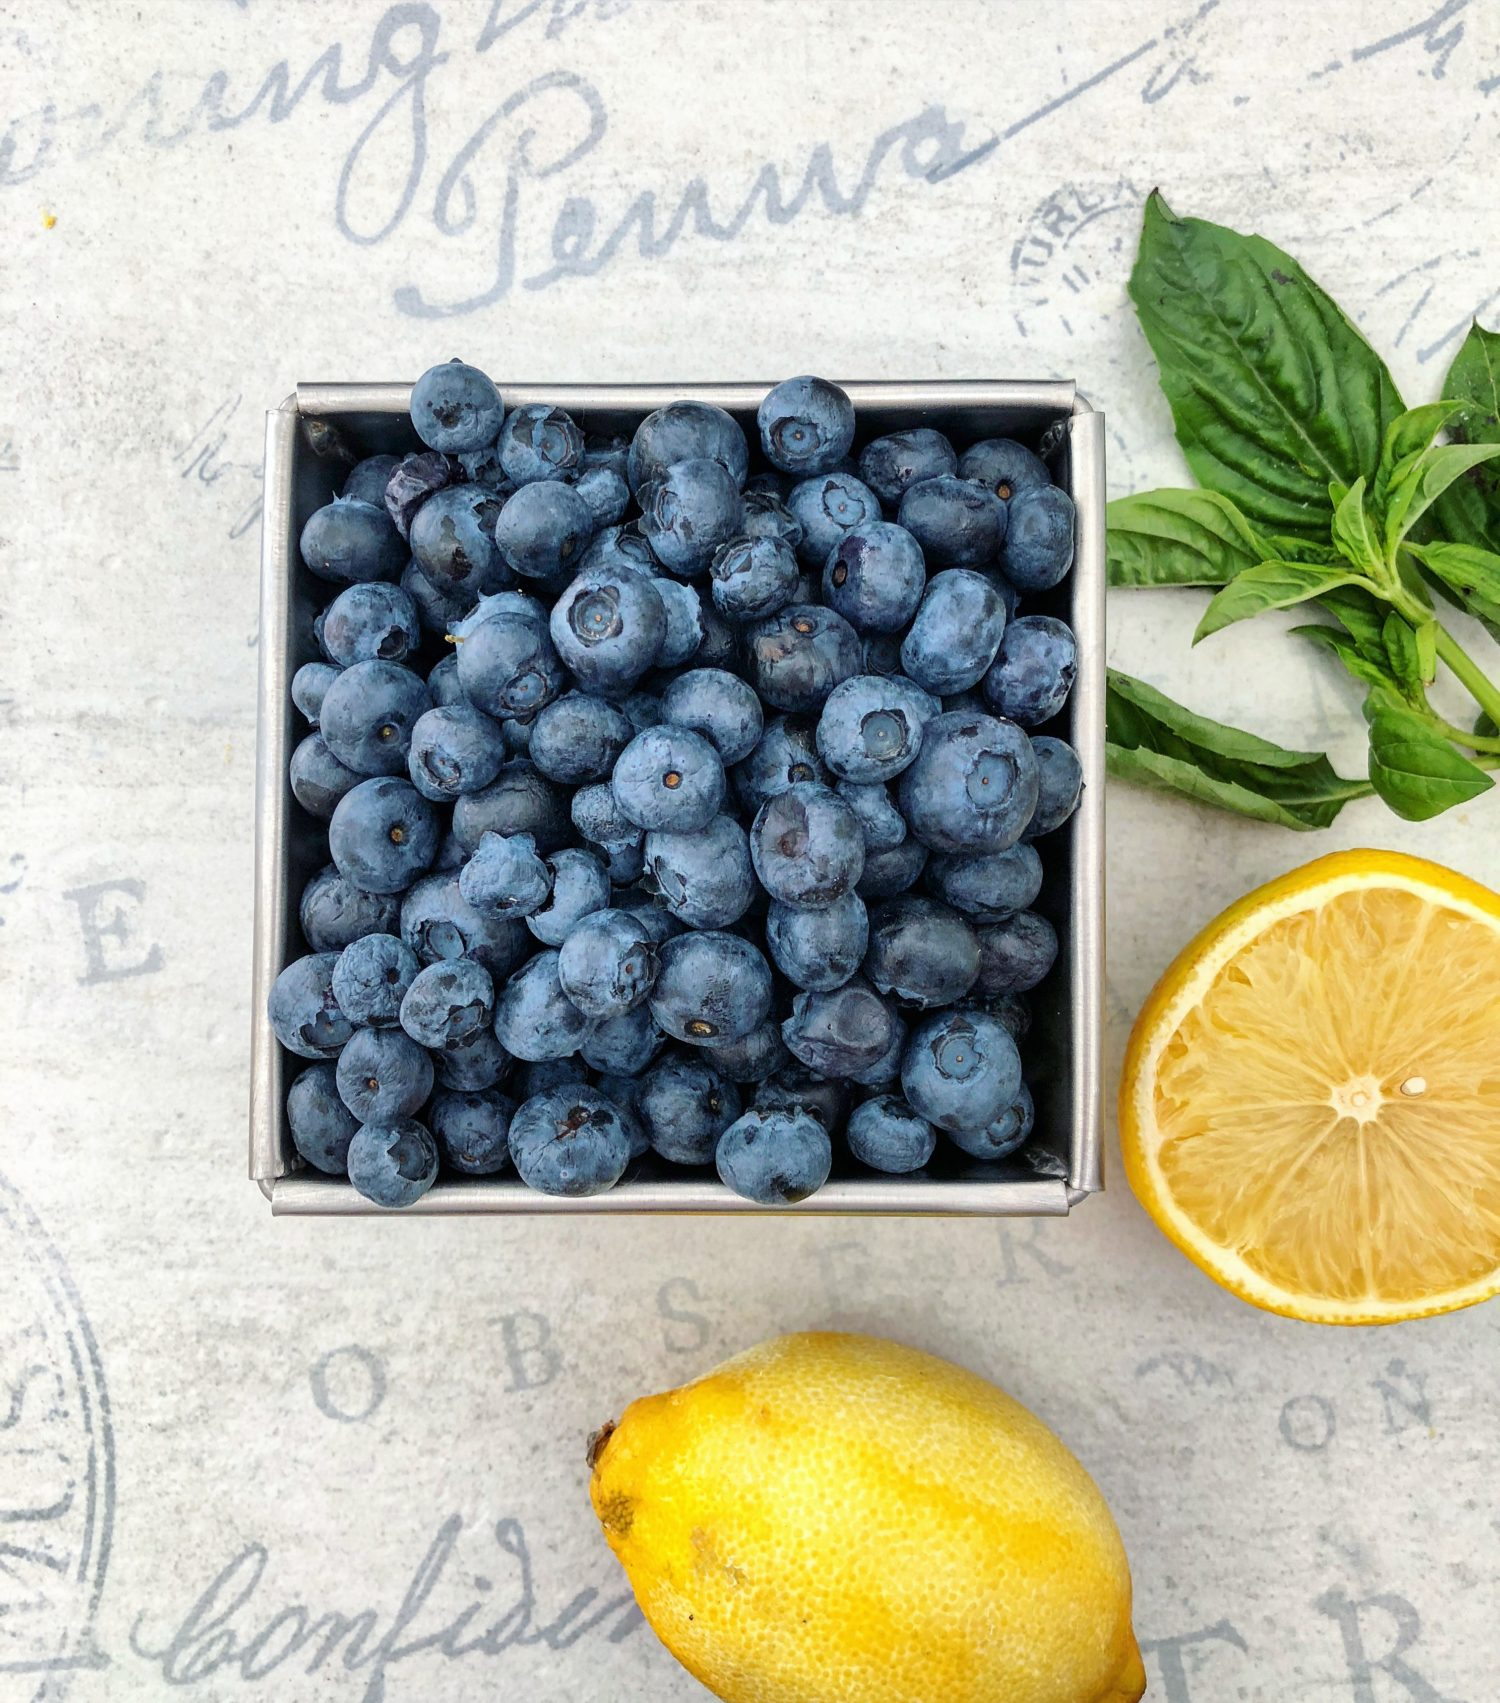 Lemon Blueberries and Basil